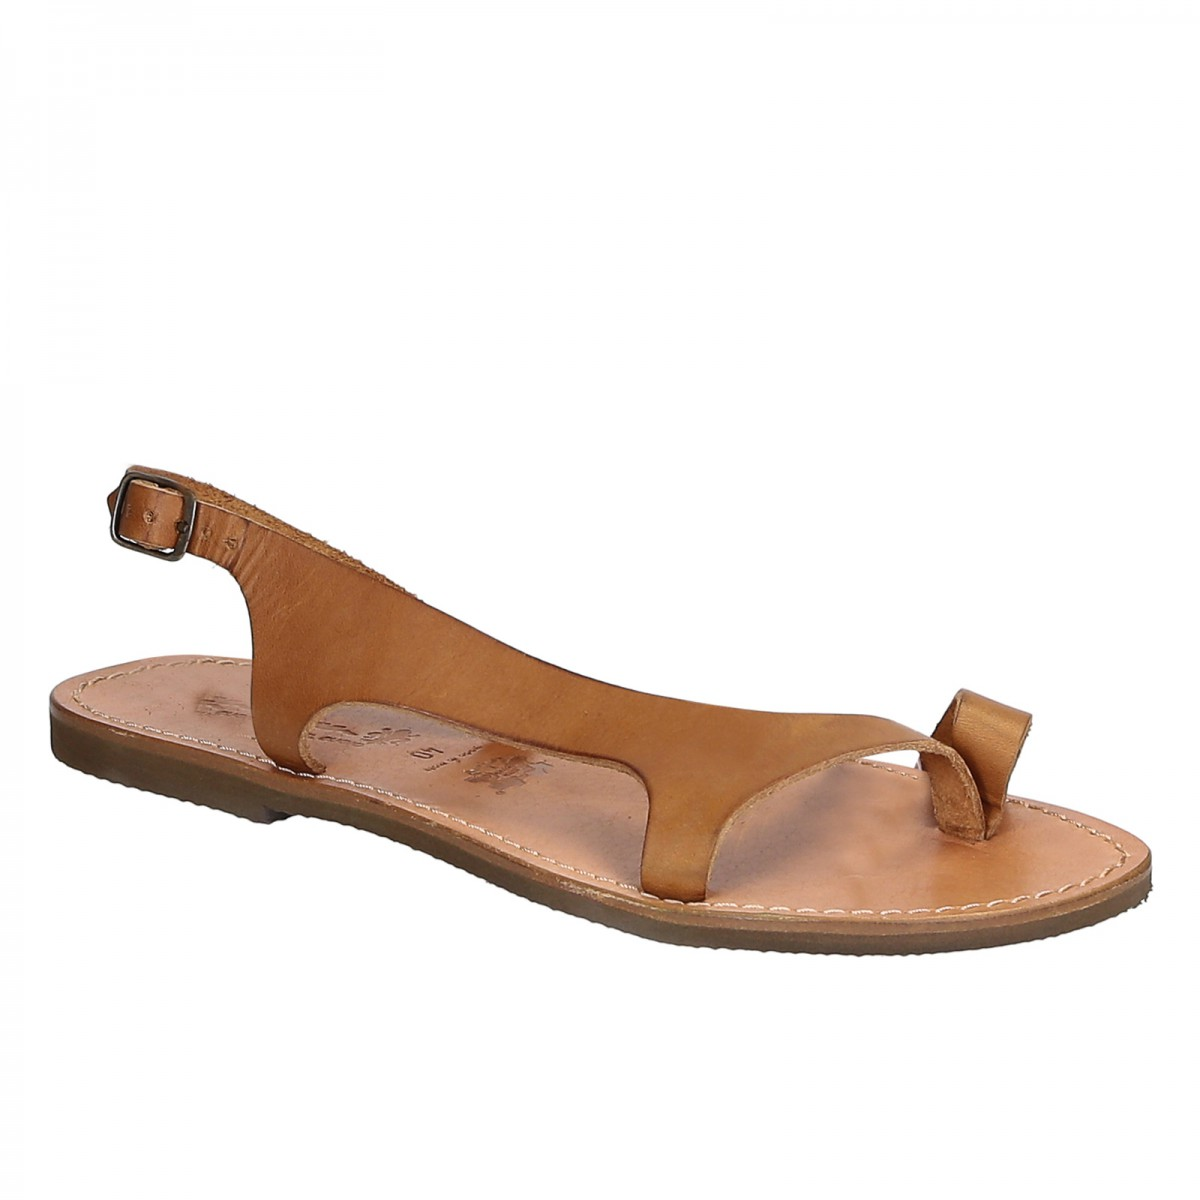 eeee34c8f1918 Tan leather thong sandals for women Handmade in Italy. Loading zoom